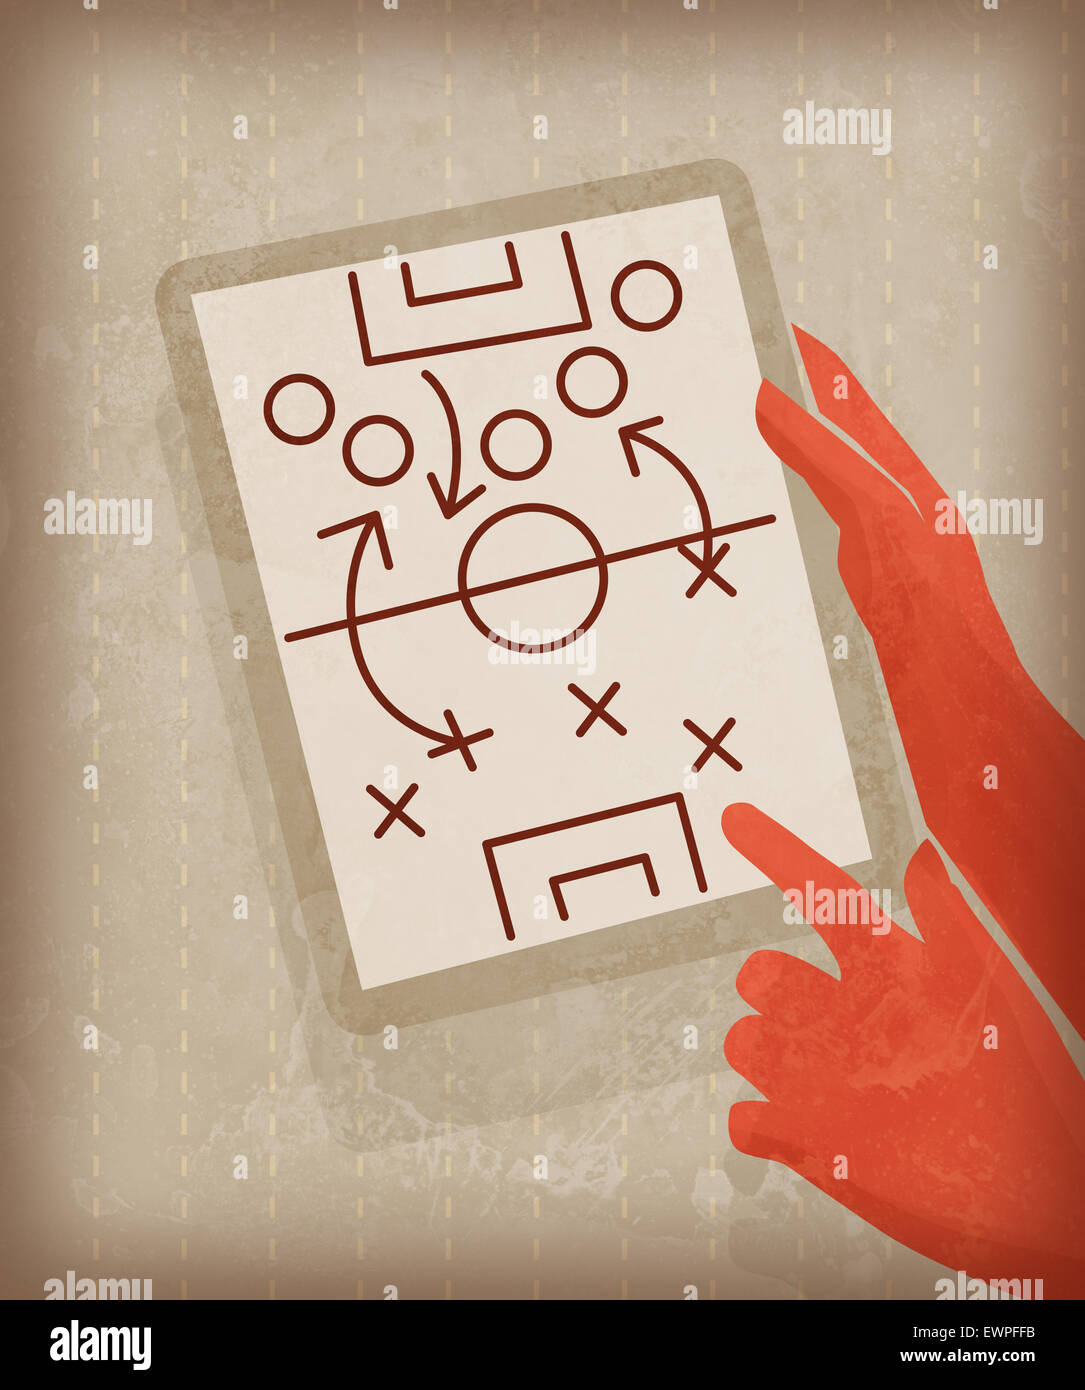 Illustration image of businessman drawing game strategy - Stock Image